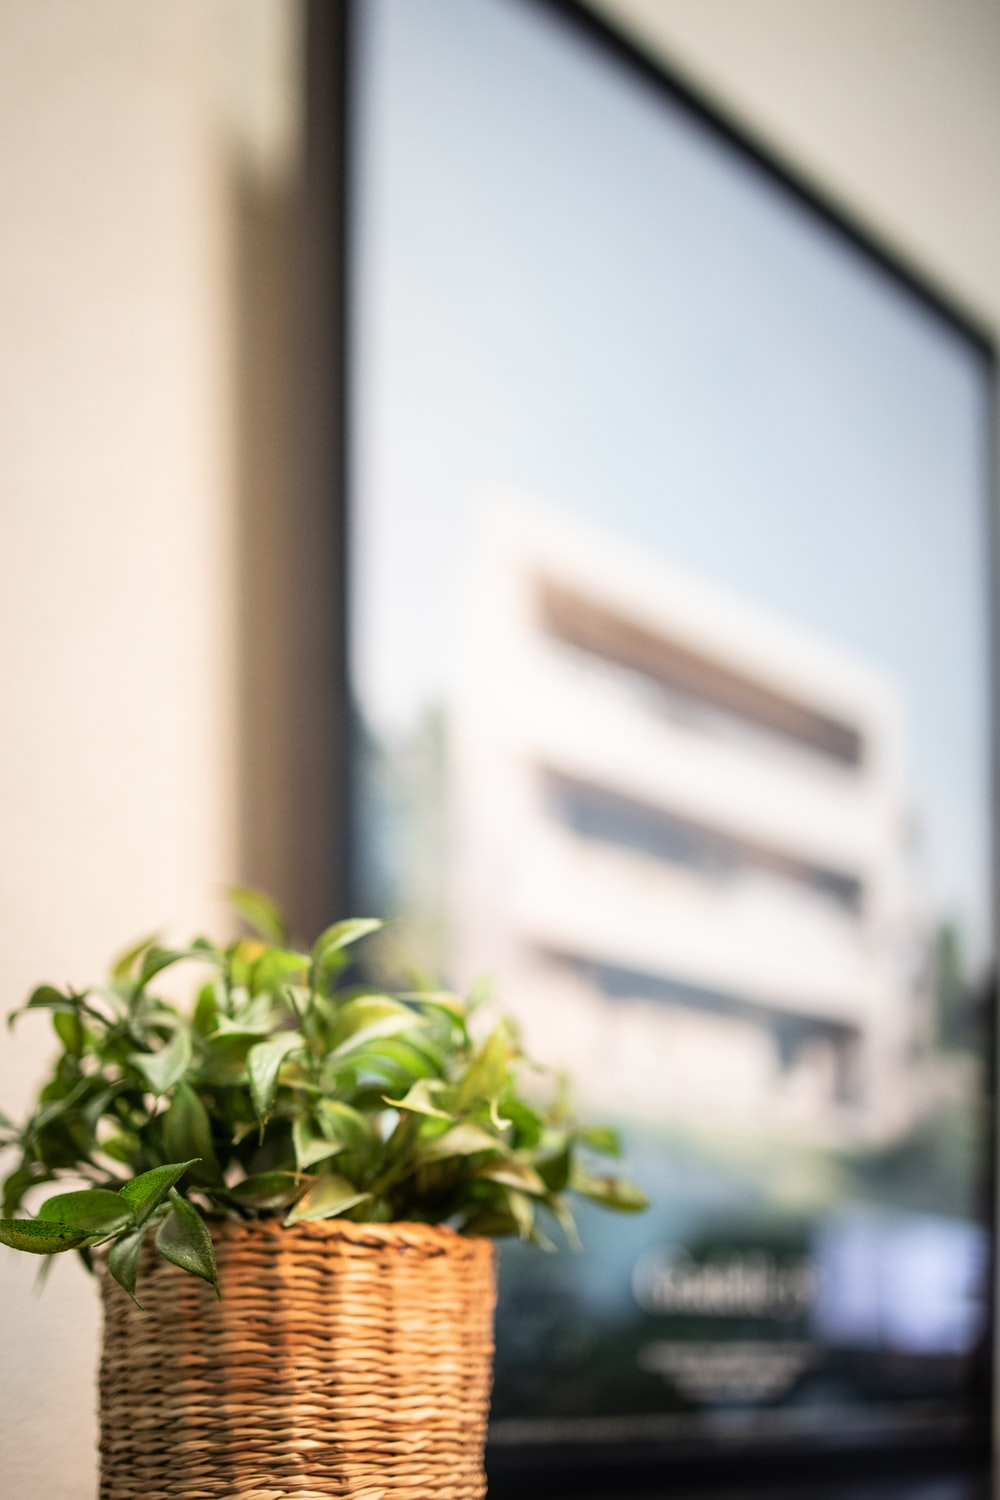 green plant in front of white concrete building during daytime